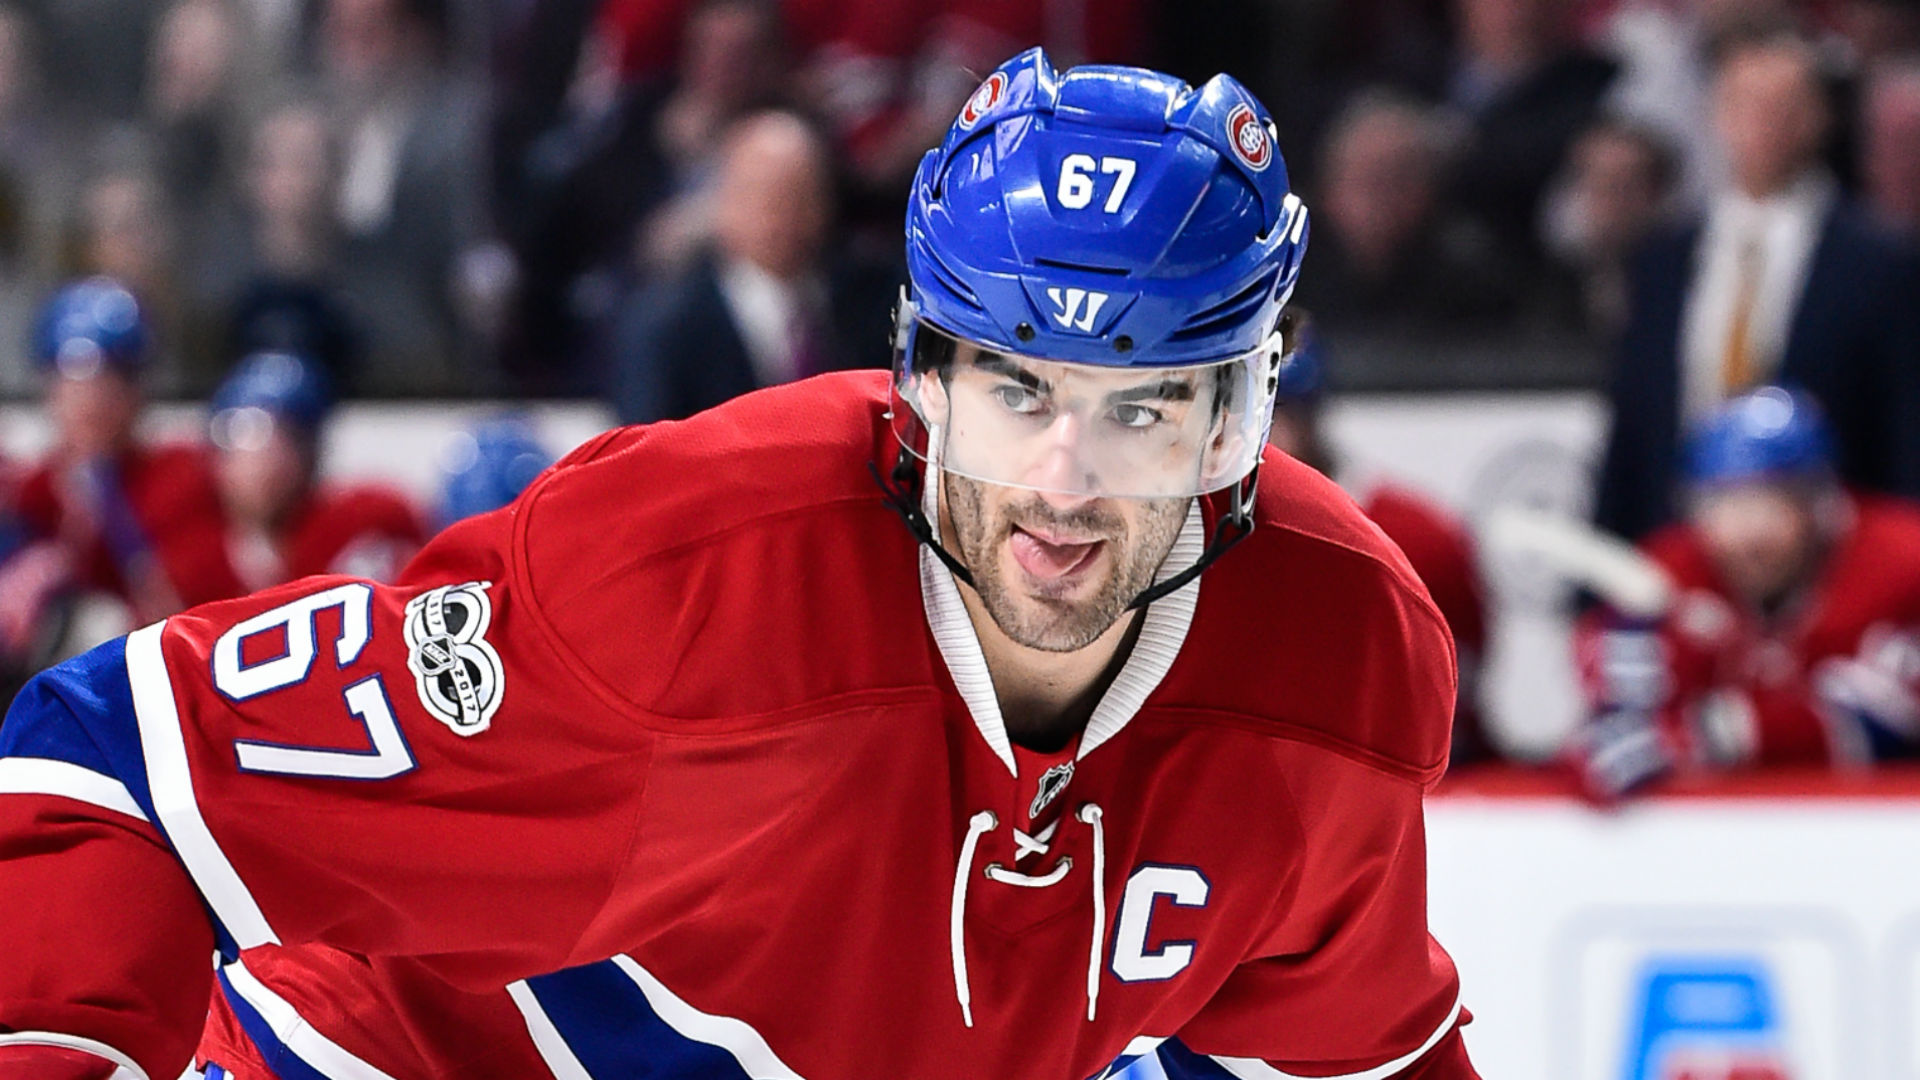 Max Pacioretty sets Canadiens record with 10th overtime goal